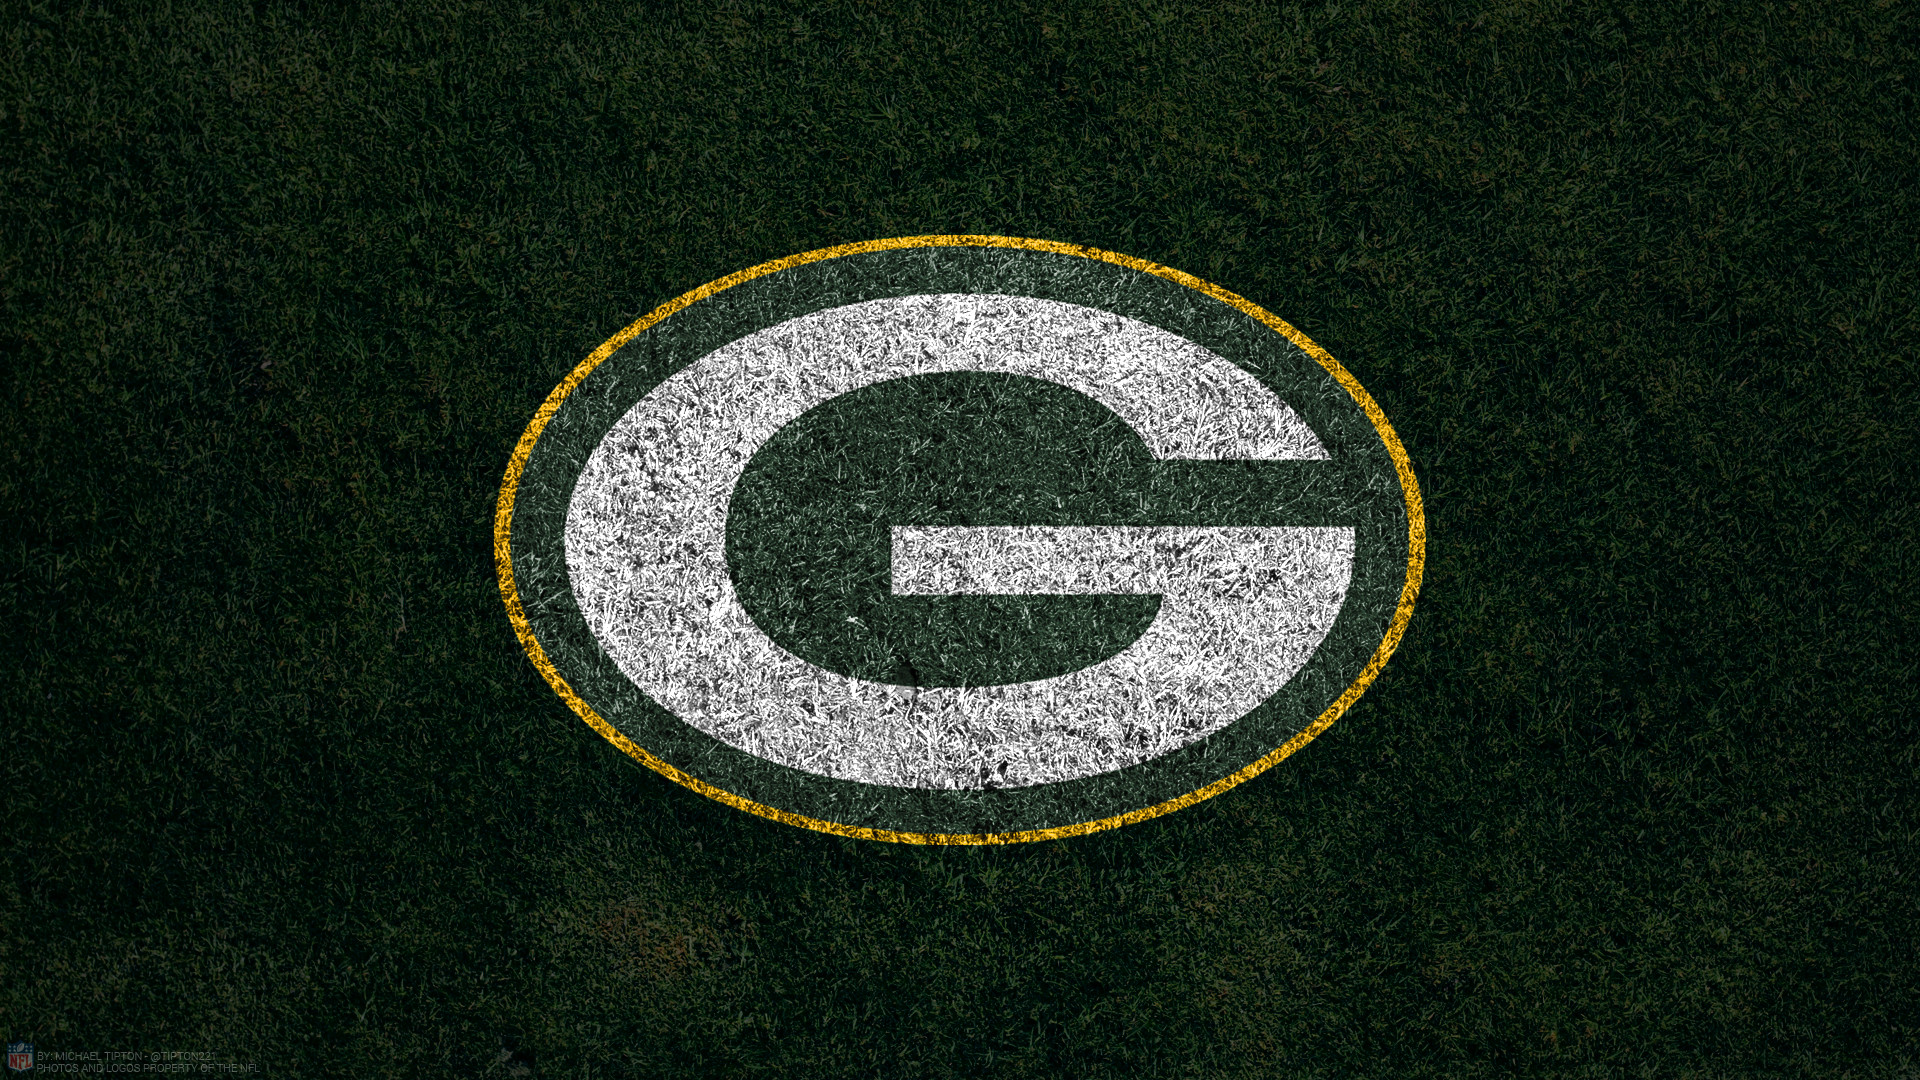 Res: 1920x1080, Green Bay Packers 2017 turf football logo wallpaper free pc desktop computer